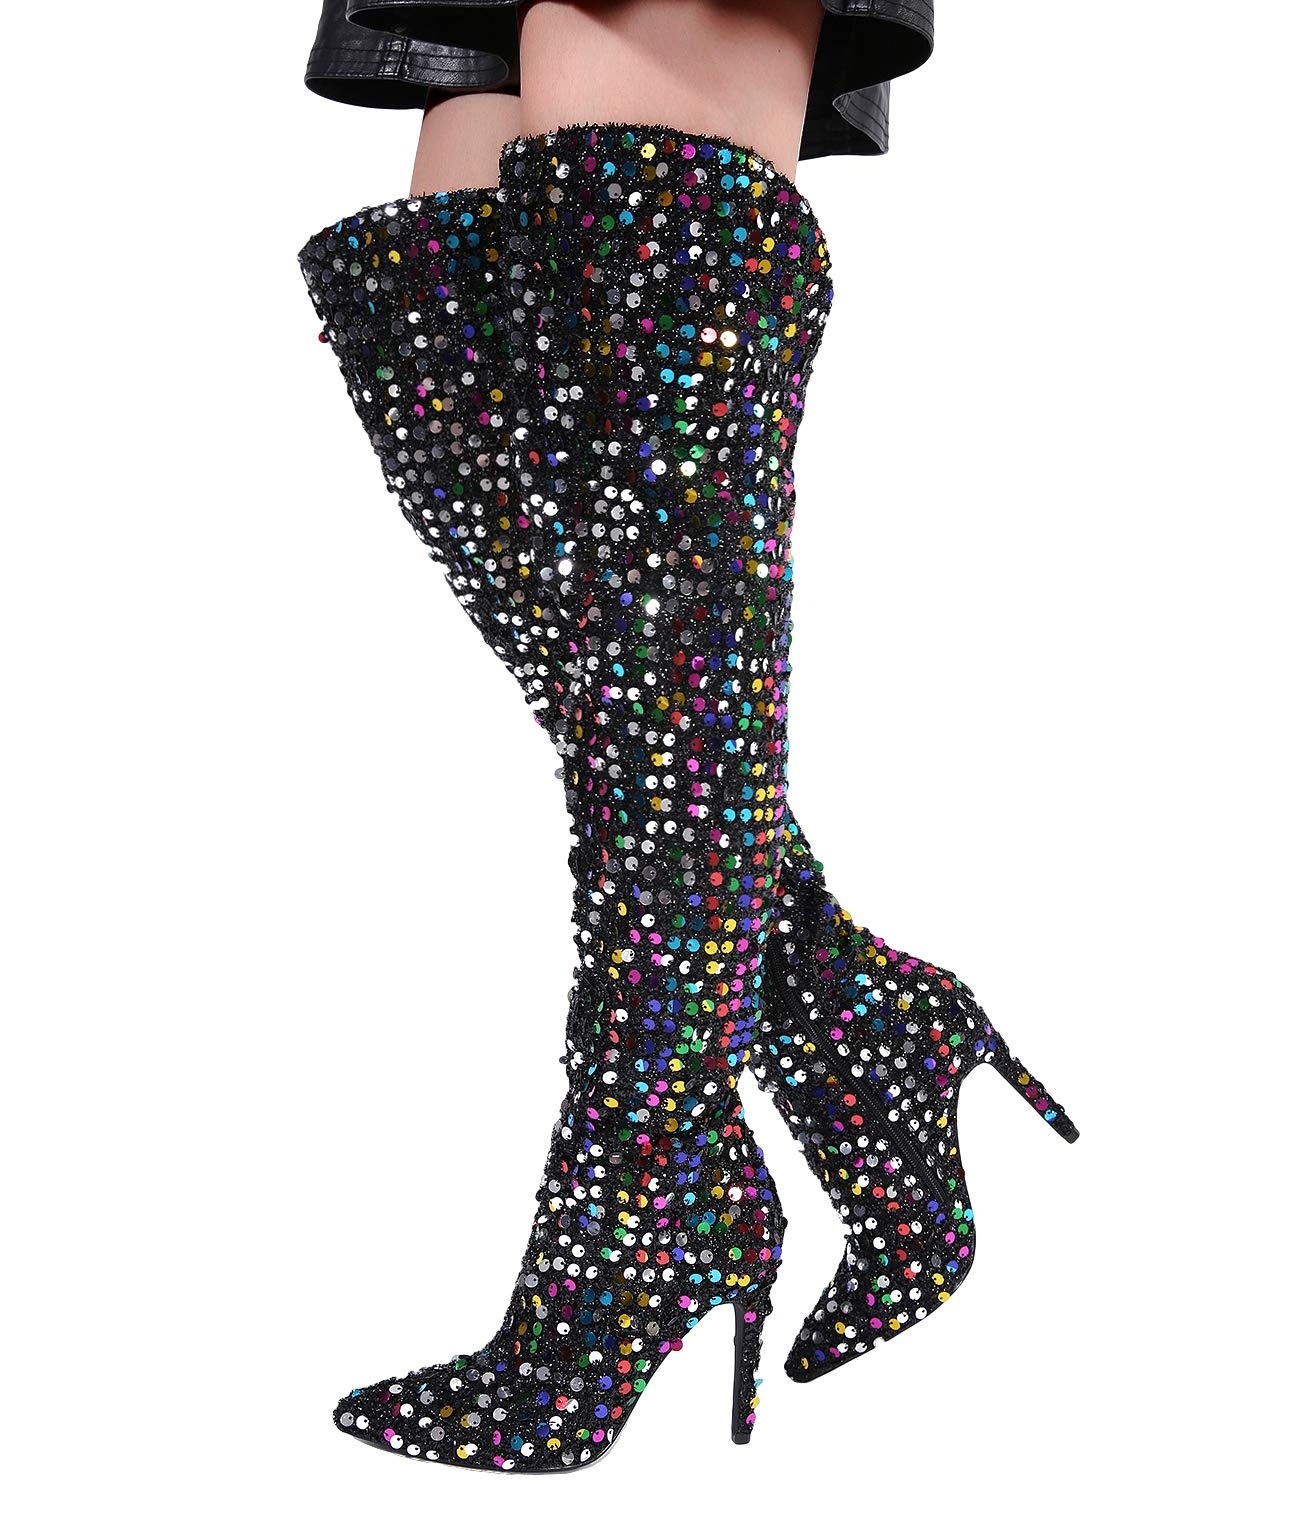 Stupmary Women Pointed Toe Sparkle Sequins Over The Knee Boots Winter Stilleo Heels Thigh High Bootie